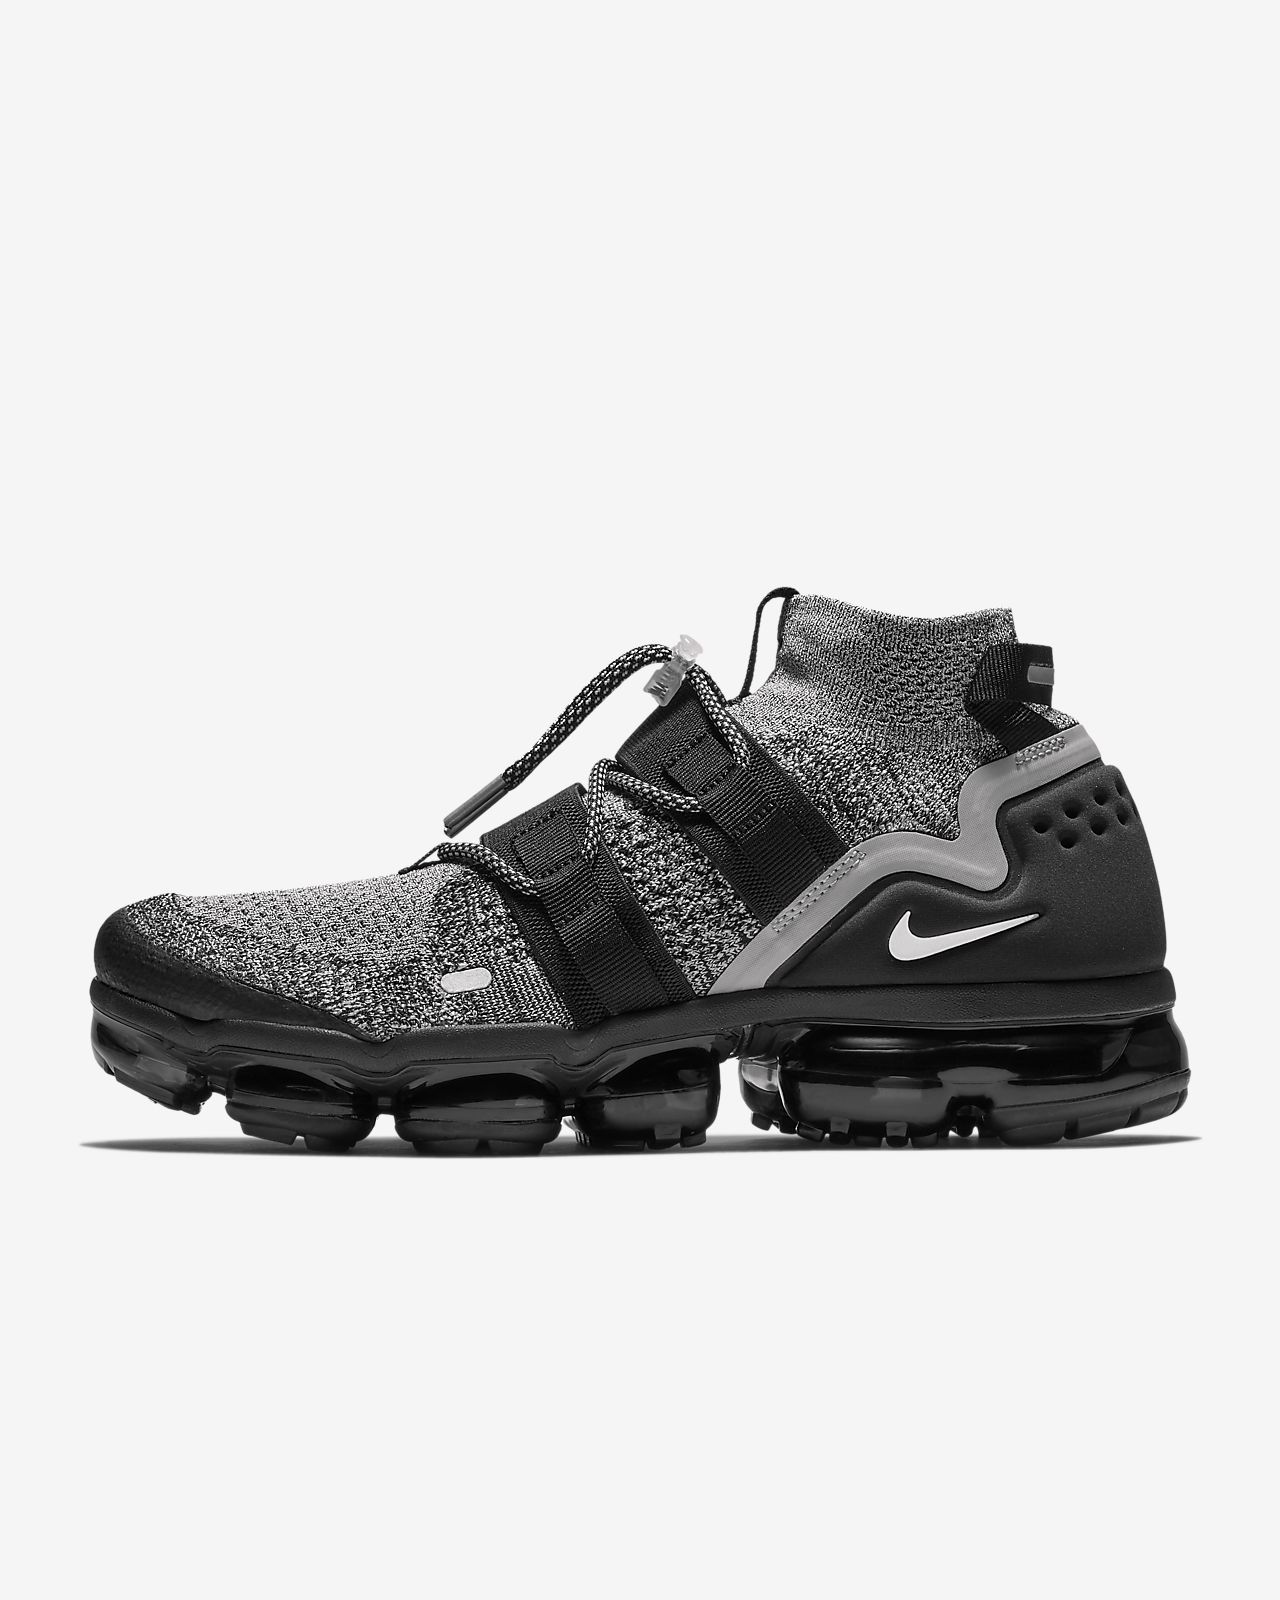 super popular 8f30f 35cf9 wholesale nike air vapormax flyknit triple noir photo 1 8 ...